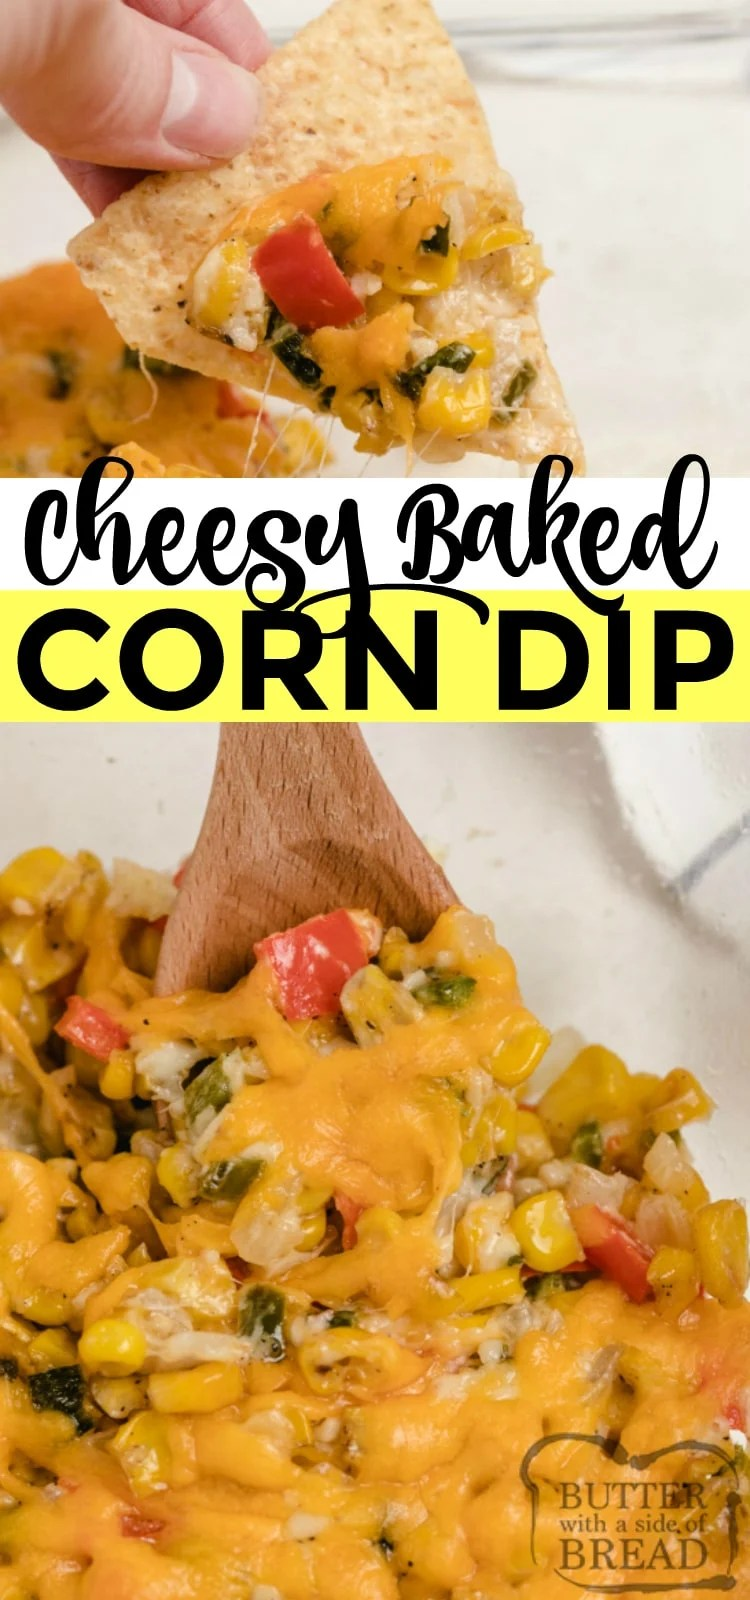 Cheesy Baked Corn Dip is full of fresh corn, veggies and cheese for an easy corn dip recipe that is bursting with flavor. Perfect chip dip that everyone will love!